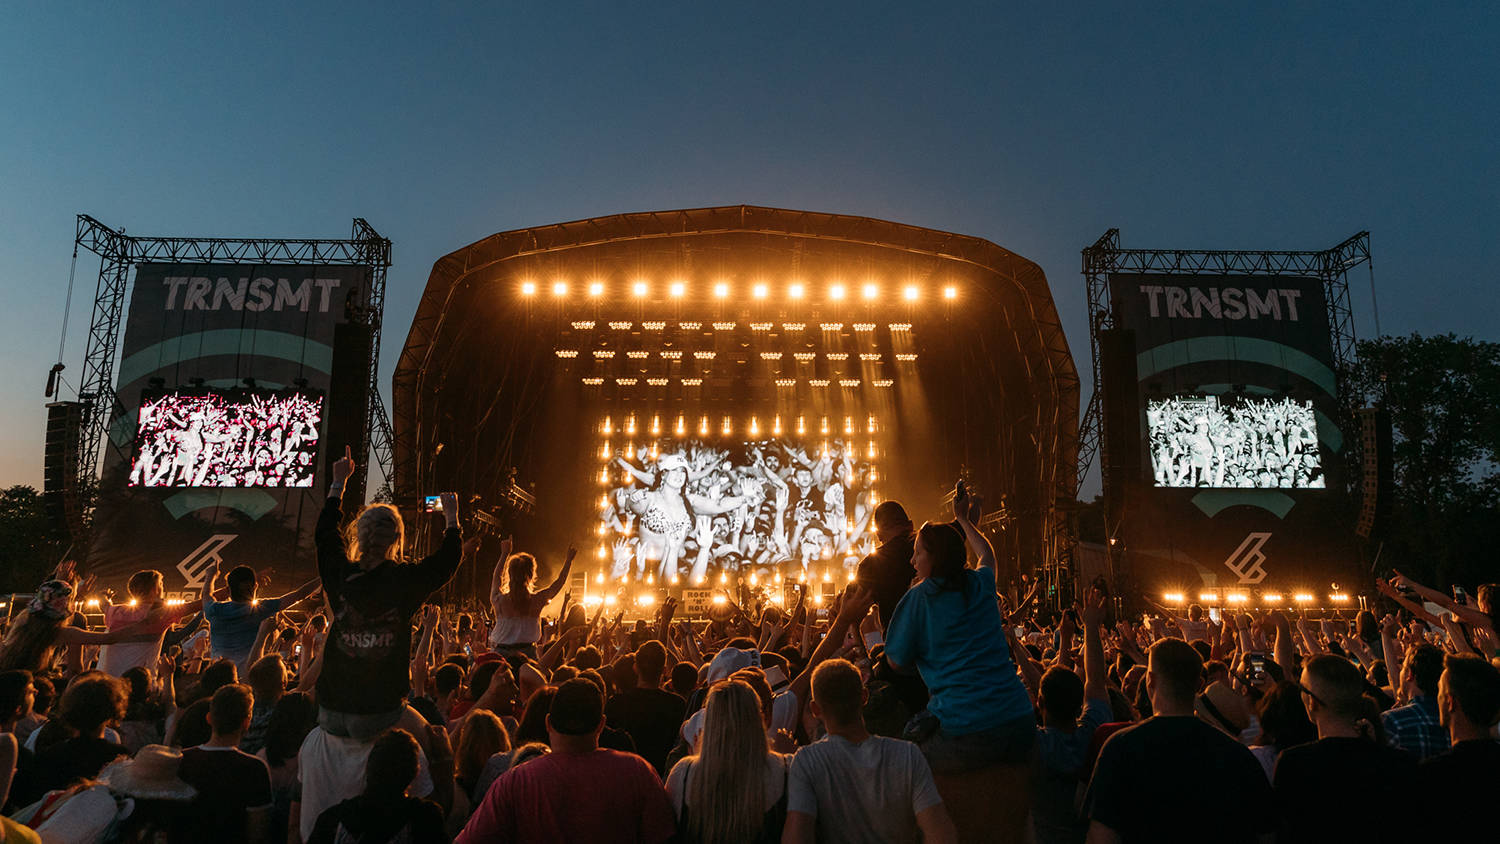 TRNSMT Festival 2020: confirmed dates, early bird ticket sale and more...